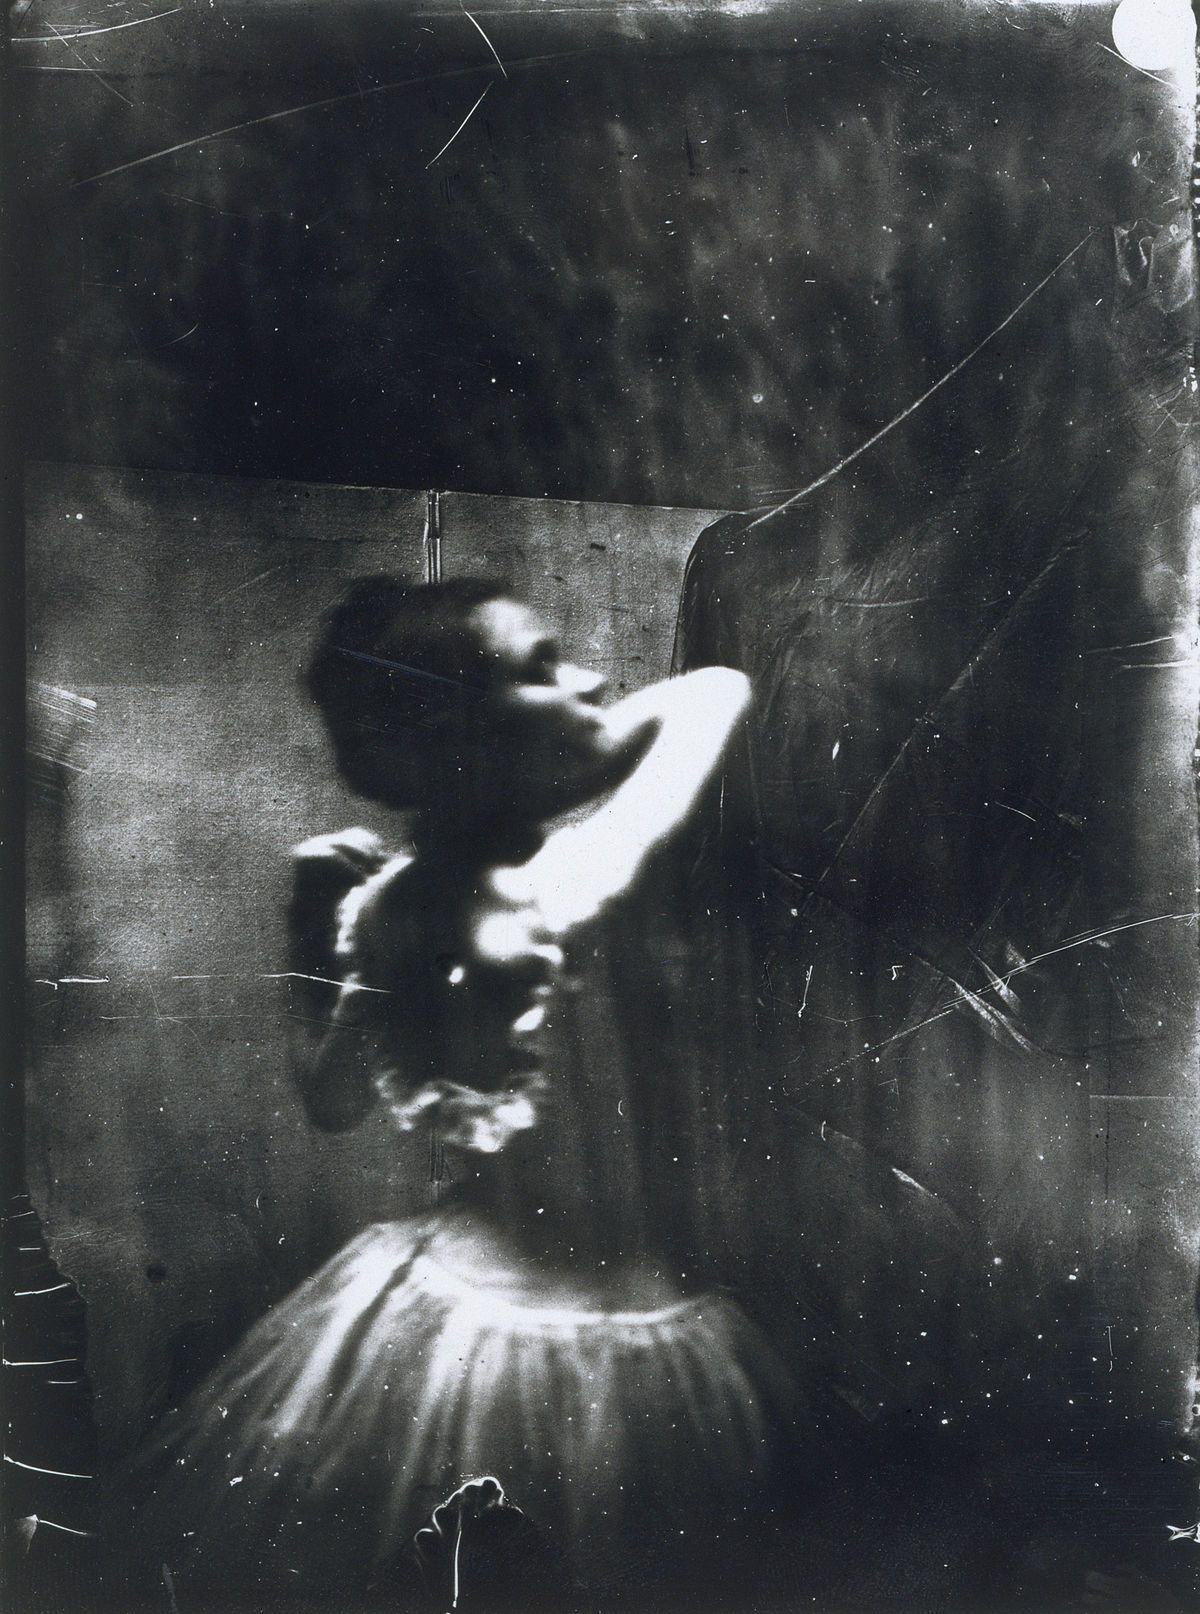 Edgar Degas, Dancer adjusting her shoulder strap, 1895